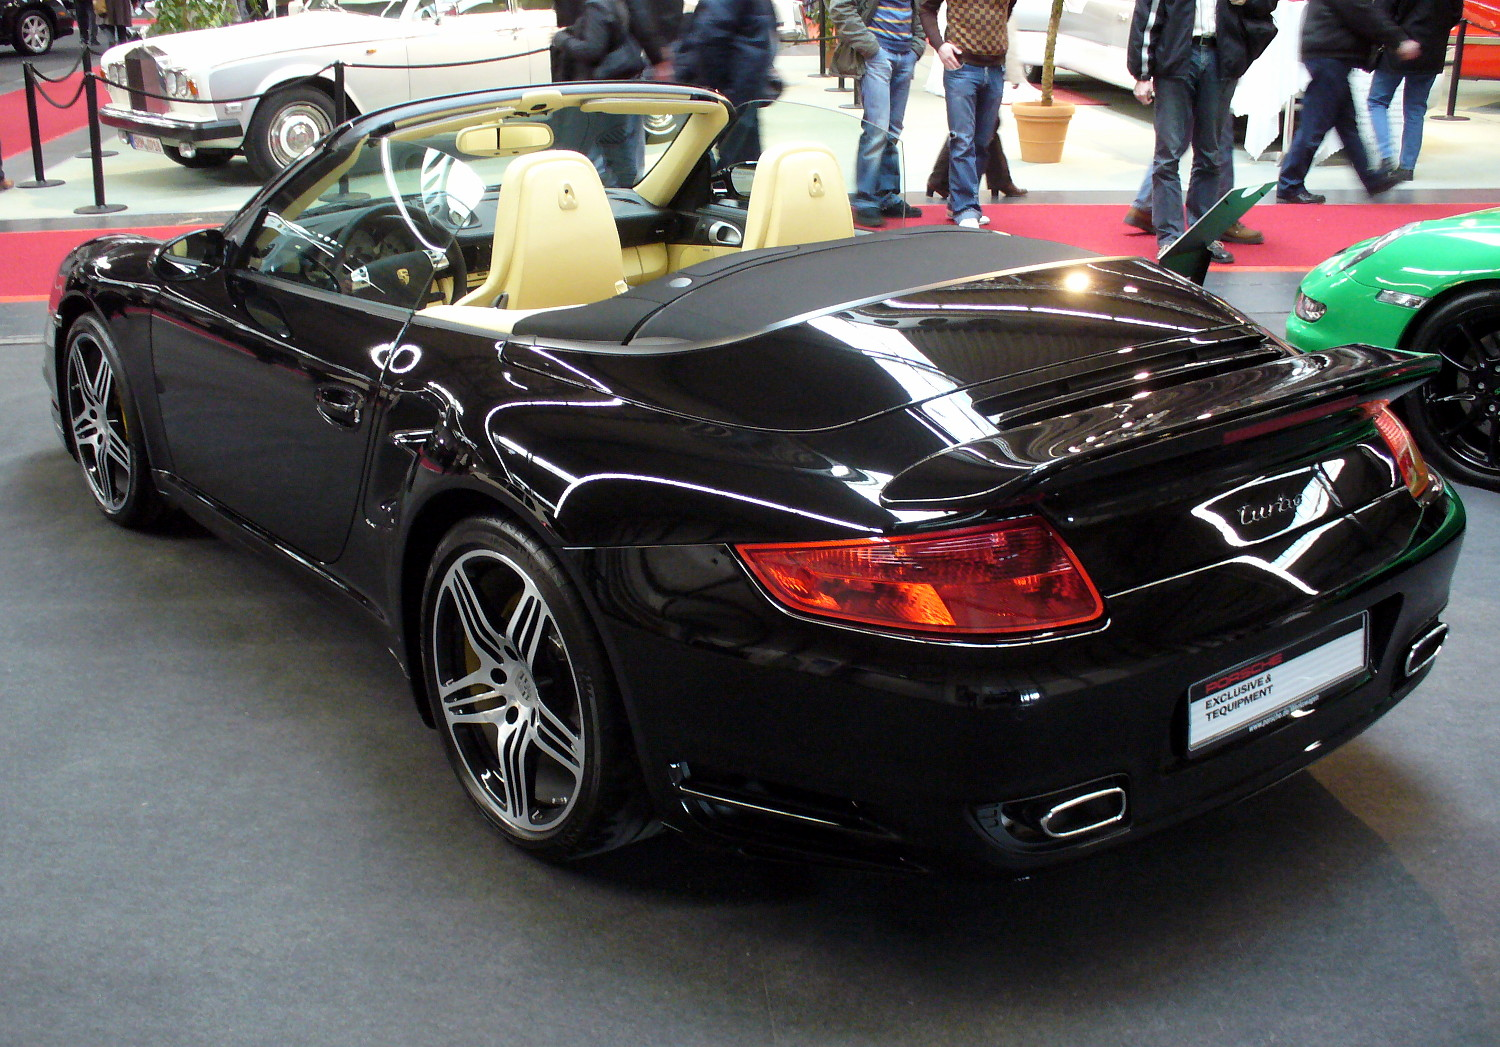 file porsche 997 turbo cabriolet heck jpg wikimedia commons. Black Bedroom Furniture Sets. Home Design Ideas